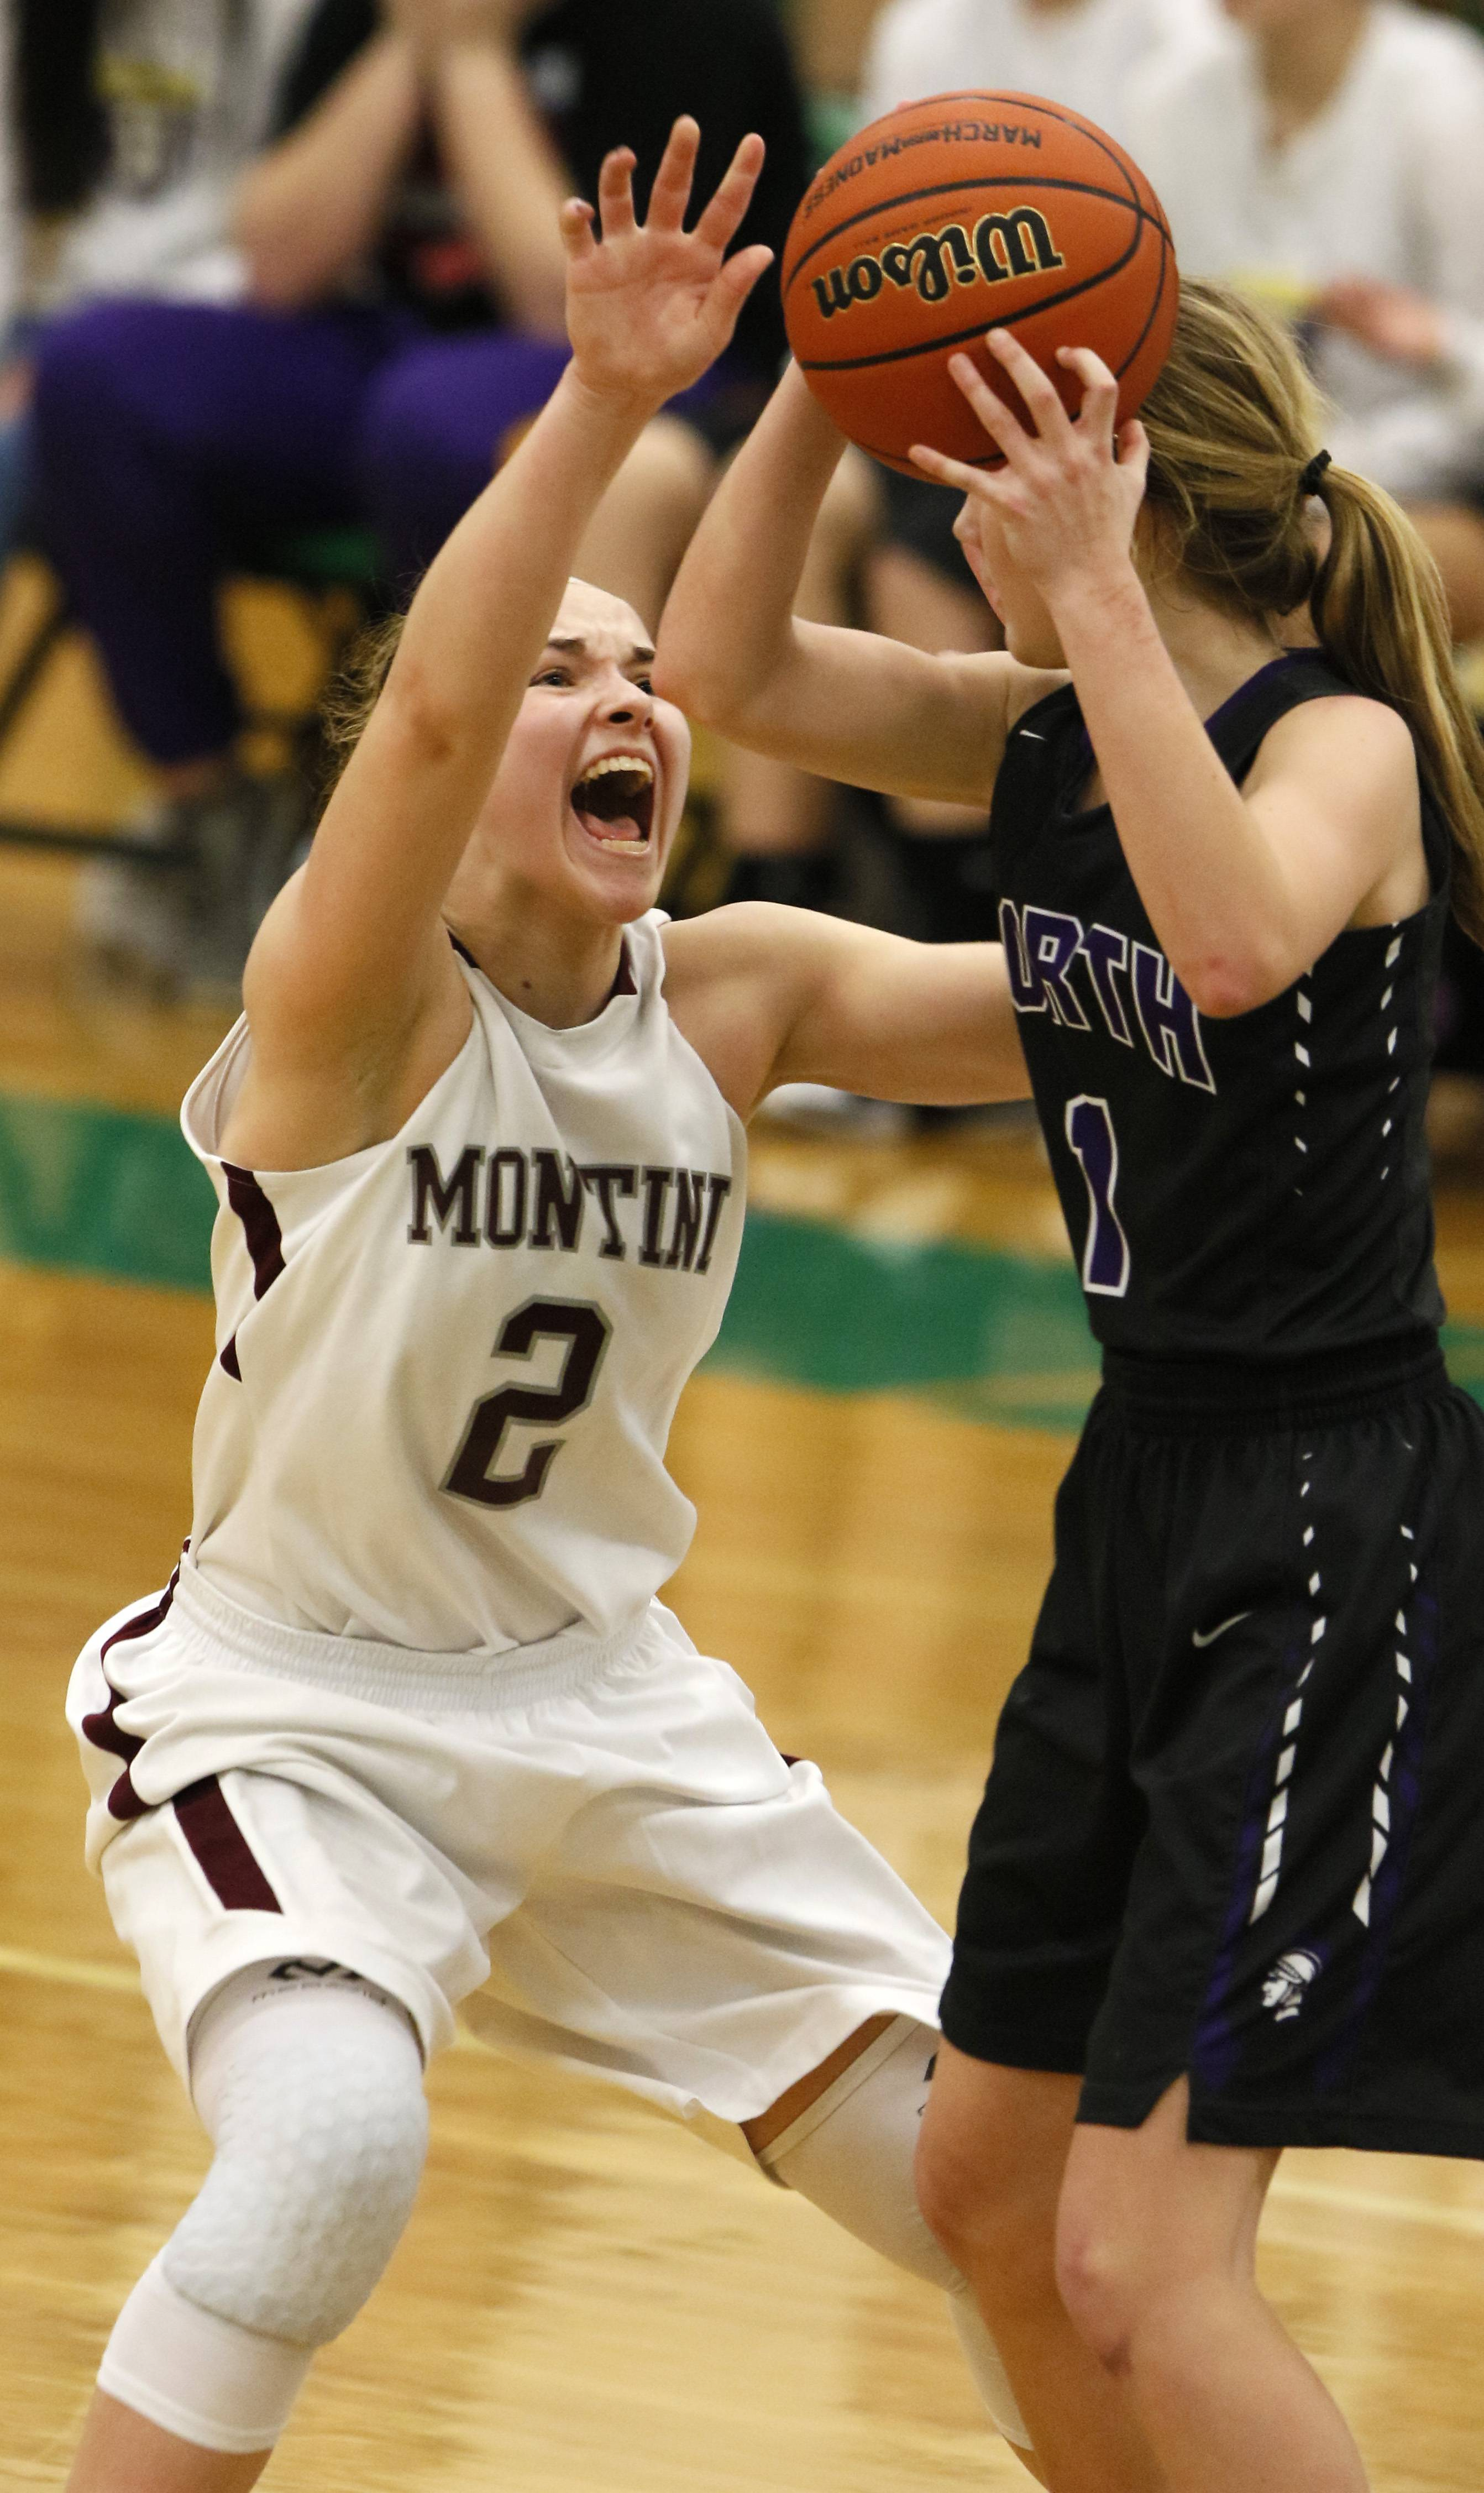 Montini Catholic's Sam Mitchell, left, defends against Downers Grove North's Ellie Gross, right.